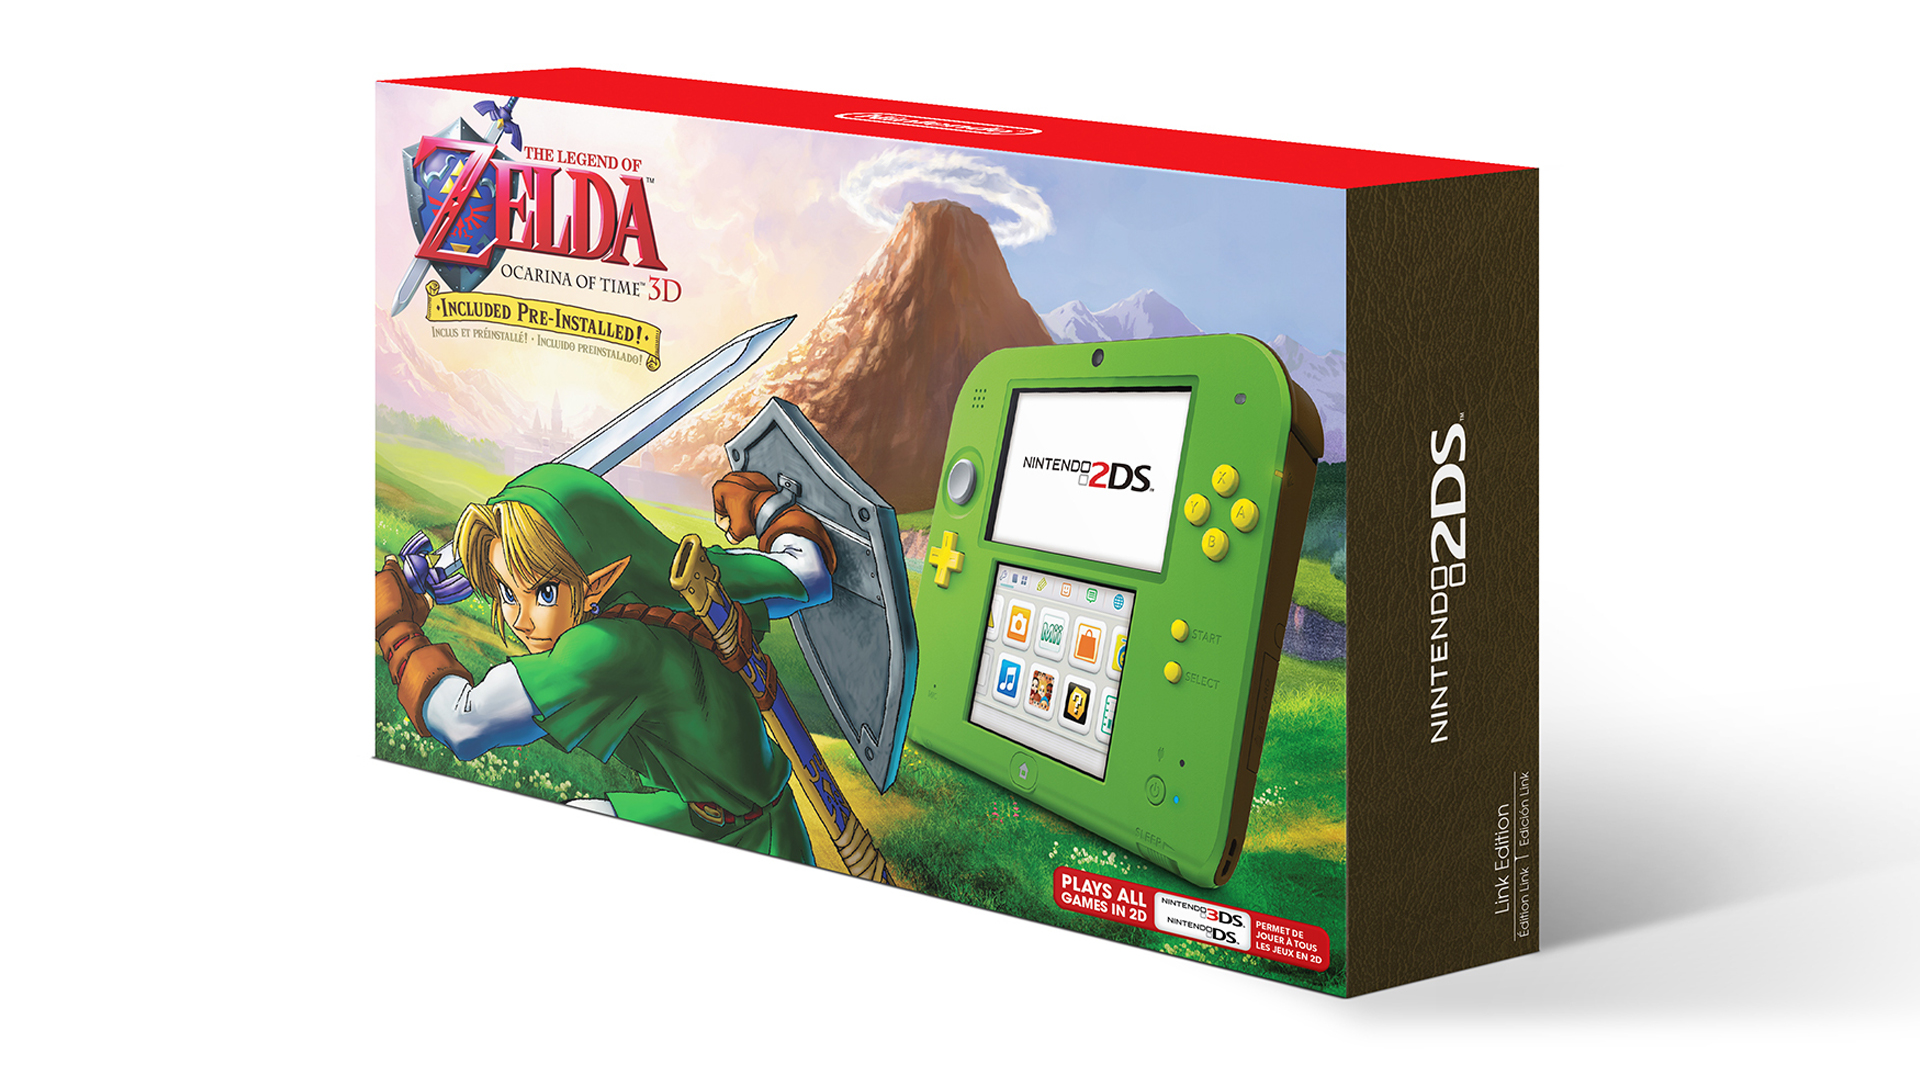 Link_Green_Nintendo_2DS_Console_Black_Friday.jpg